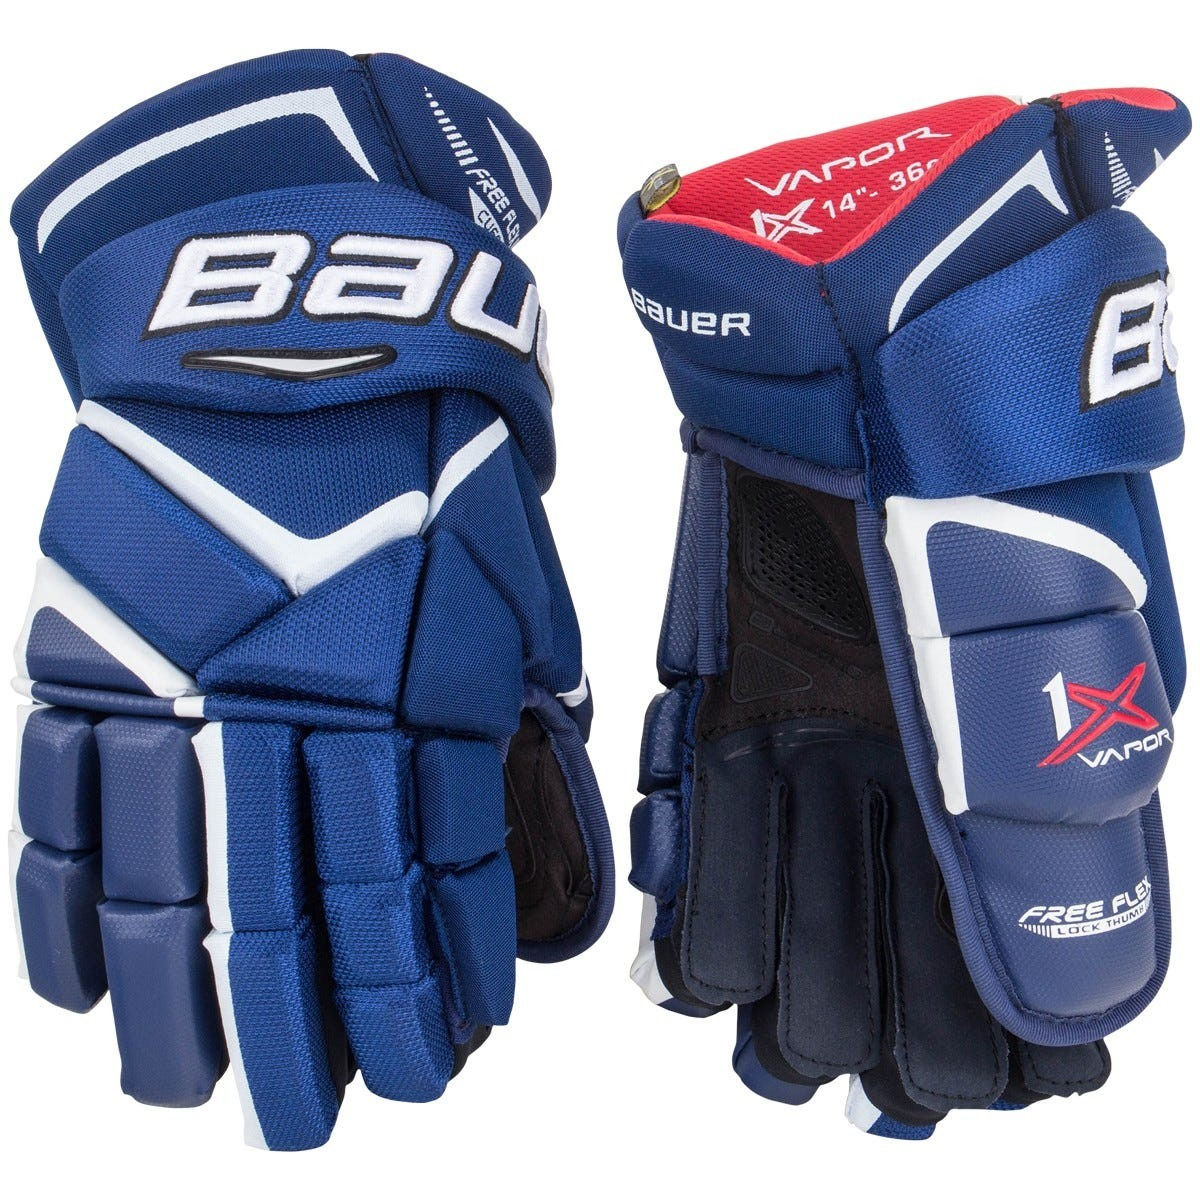 BAUER Vapor 1X Senior Ice Hockey Gloves